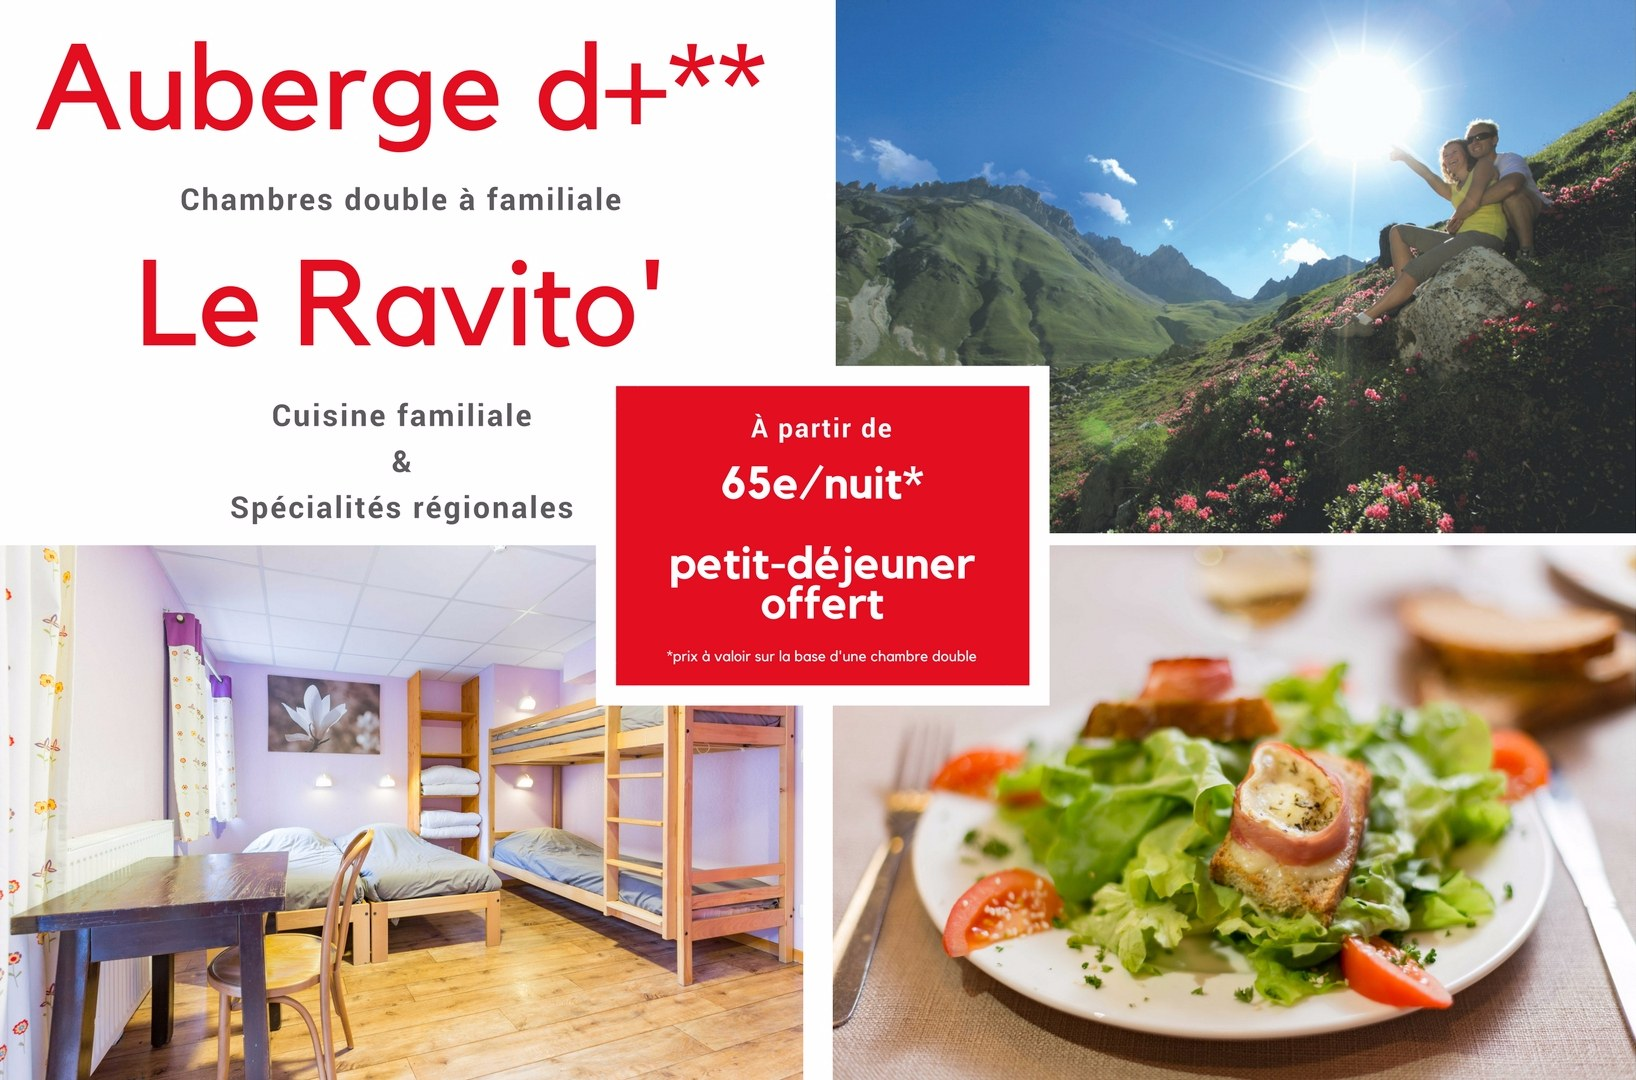 Home page auberge d+